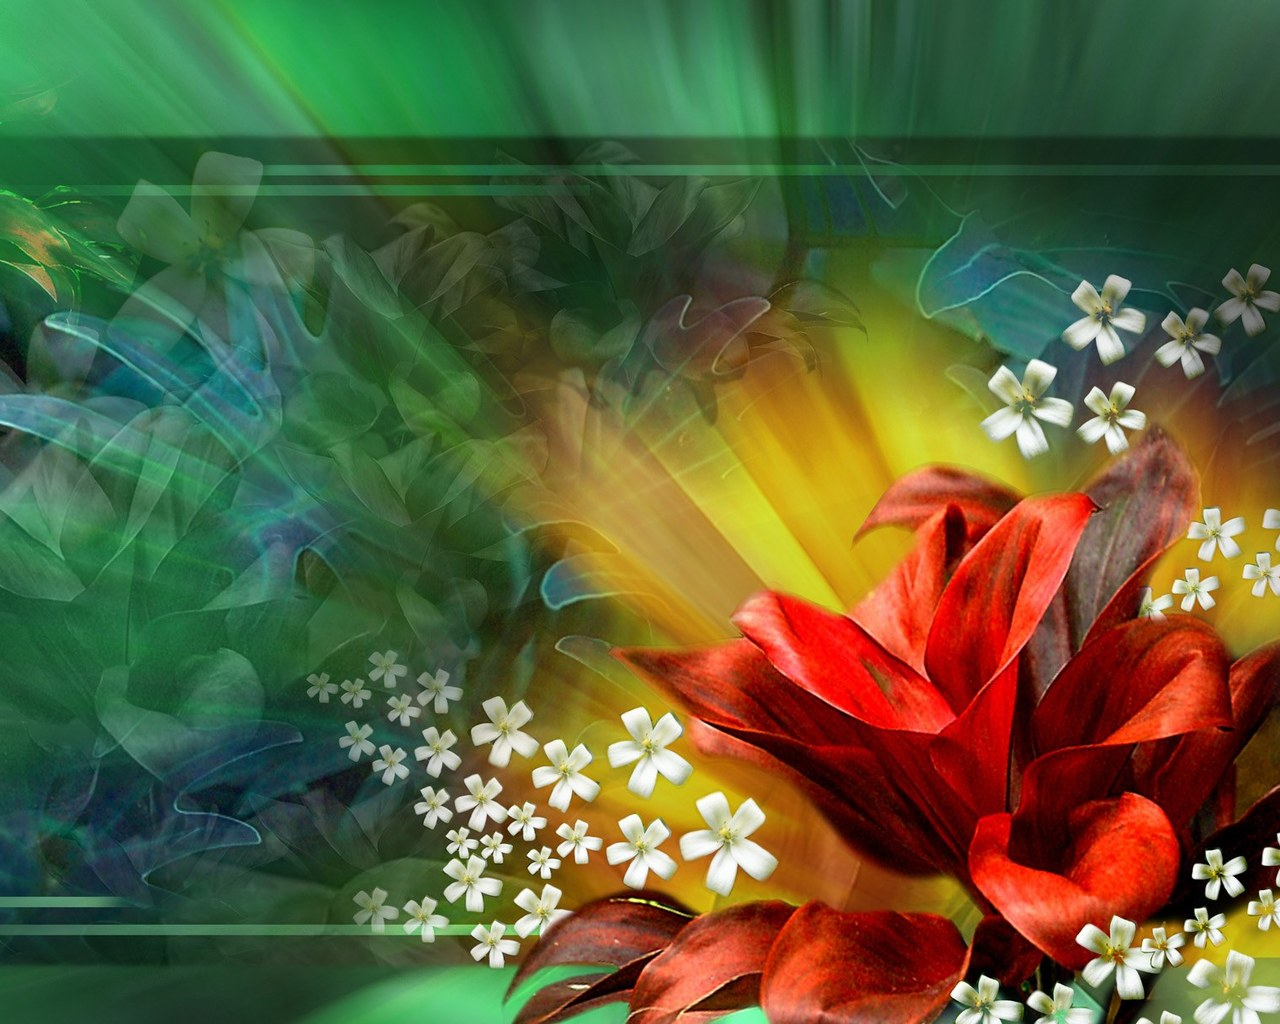 Desktop Nature wallpaper  3d Animated Desktop  Free Animated